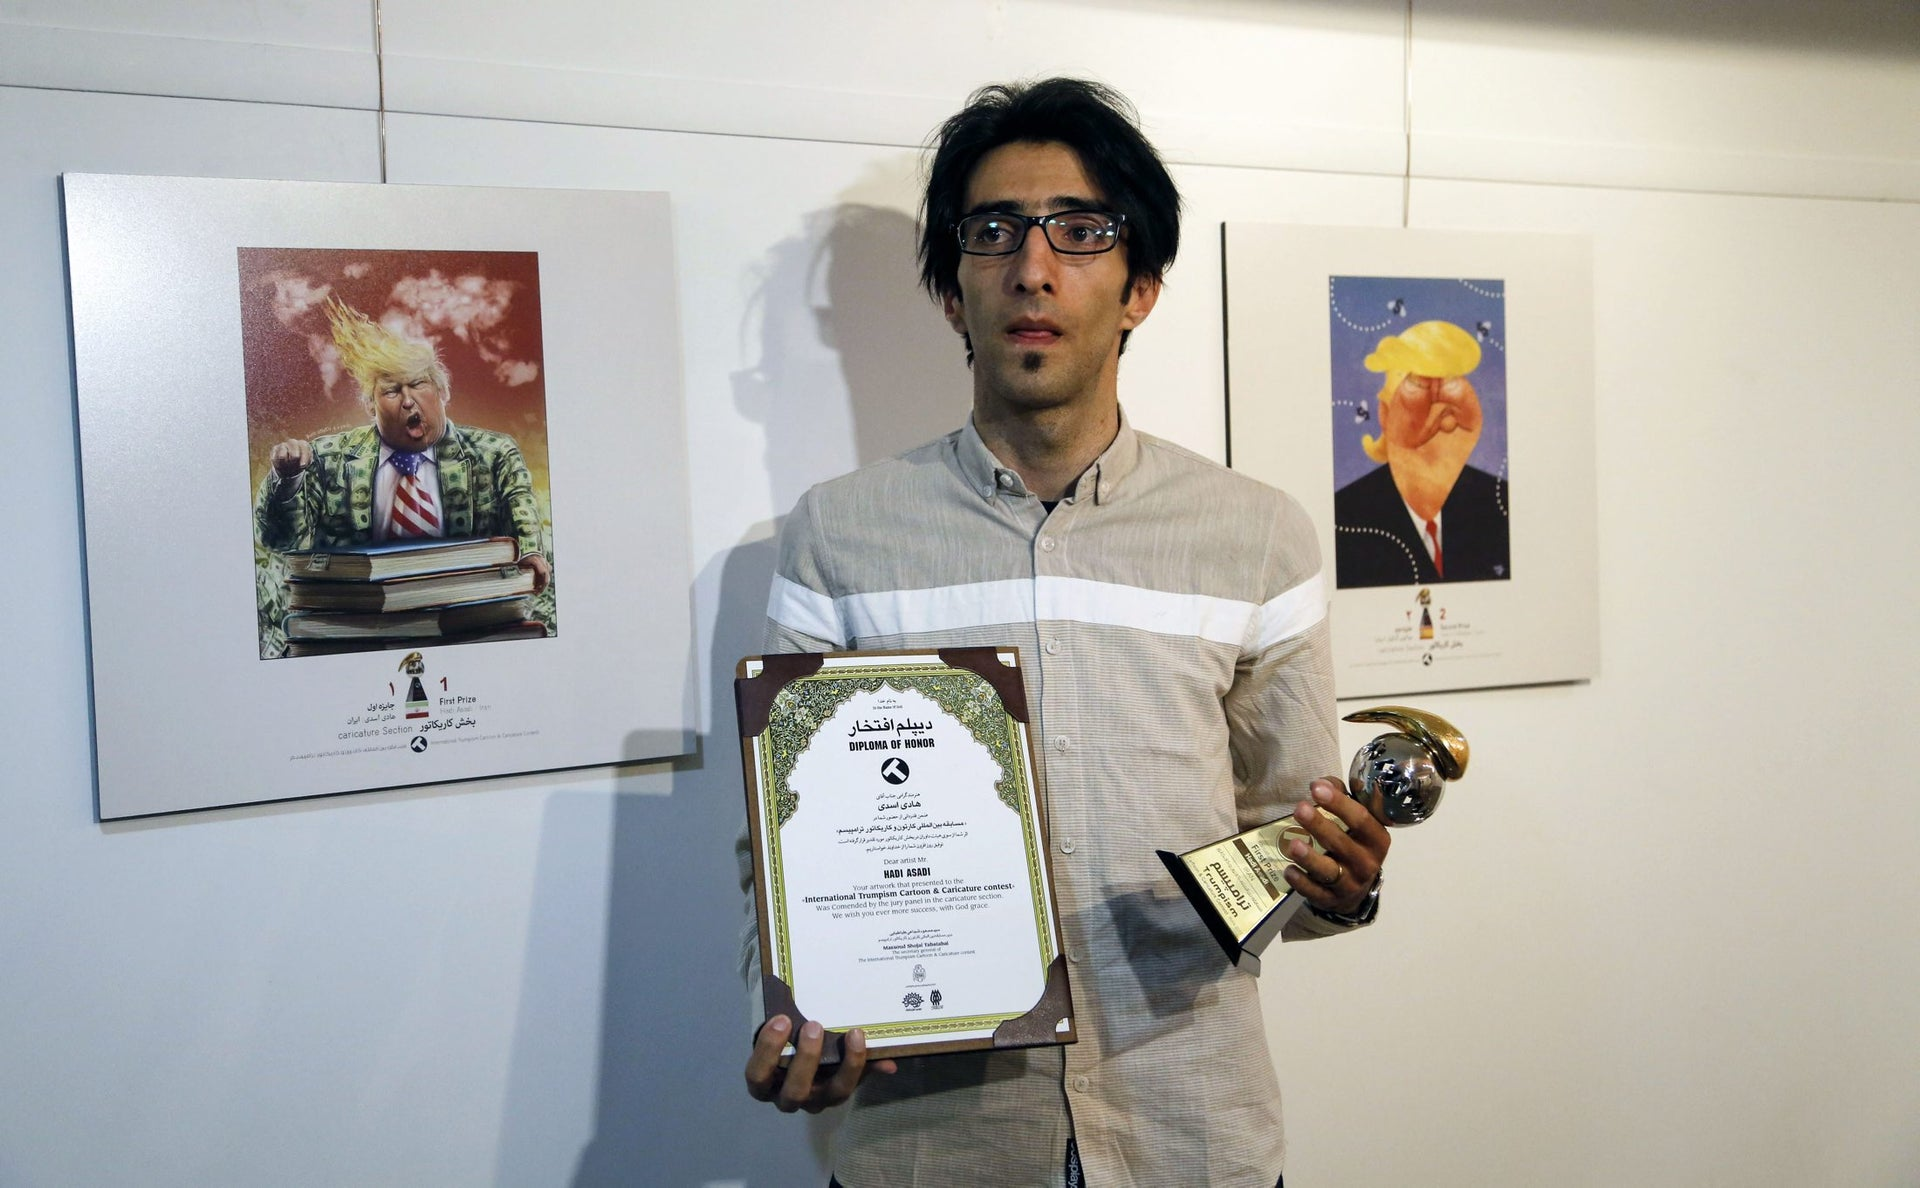 Iranian cartoonist Hadi Asadi poses for a picture with a trophy and an award next to cartoons of US President Donald J. Trump, at an exhibition of the Islamic Republic's 2017 International Trumpism cartoon and caricature contest, in the capital Tehran on July 3, 2017.